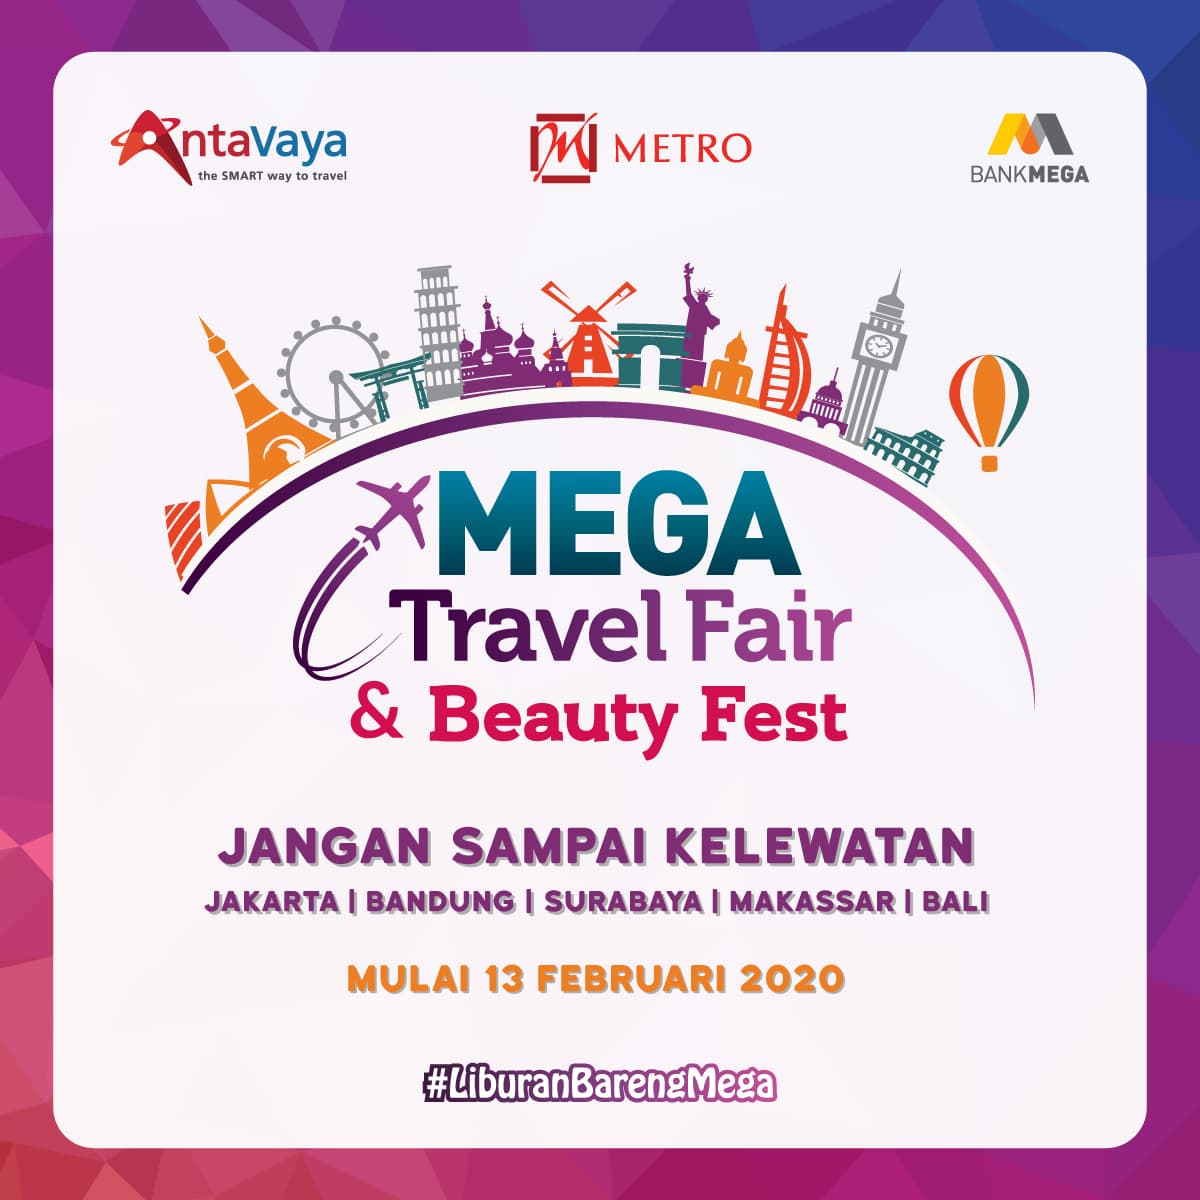 Mega Travel Fair Beauty Fest 2020 Phase 1